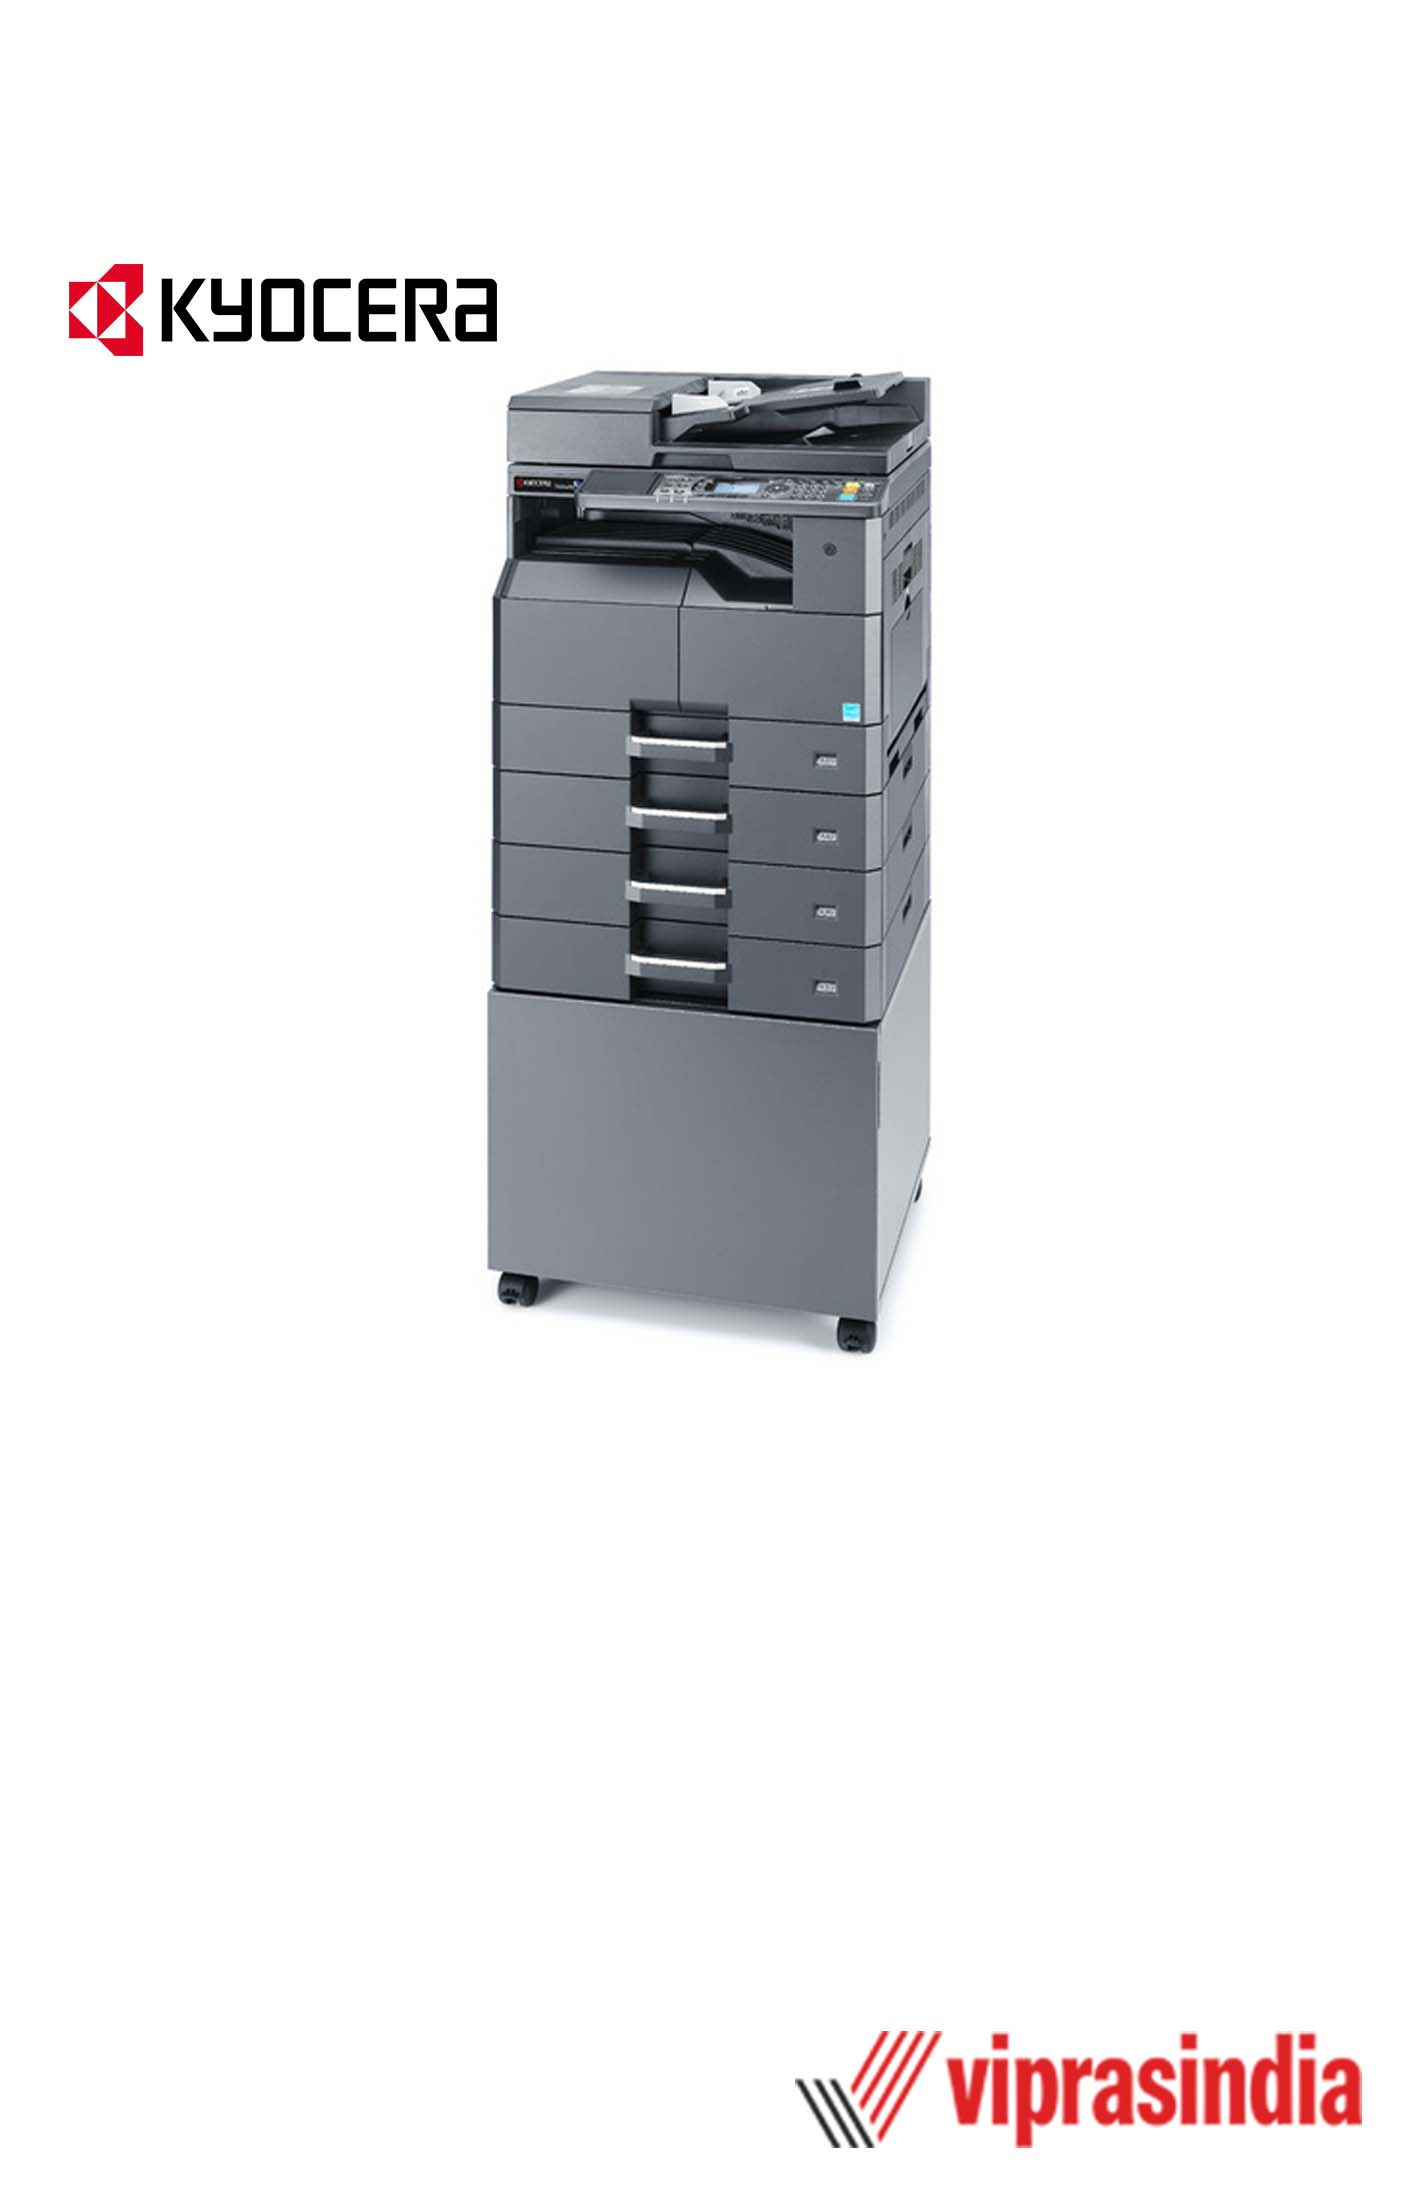 Printer Taskalfa Kyocera with Duplex, Network 2201